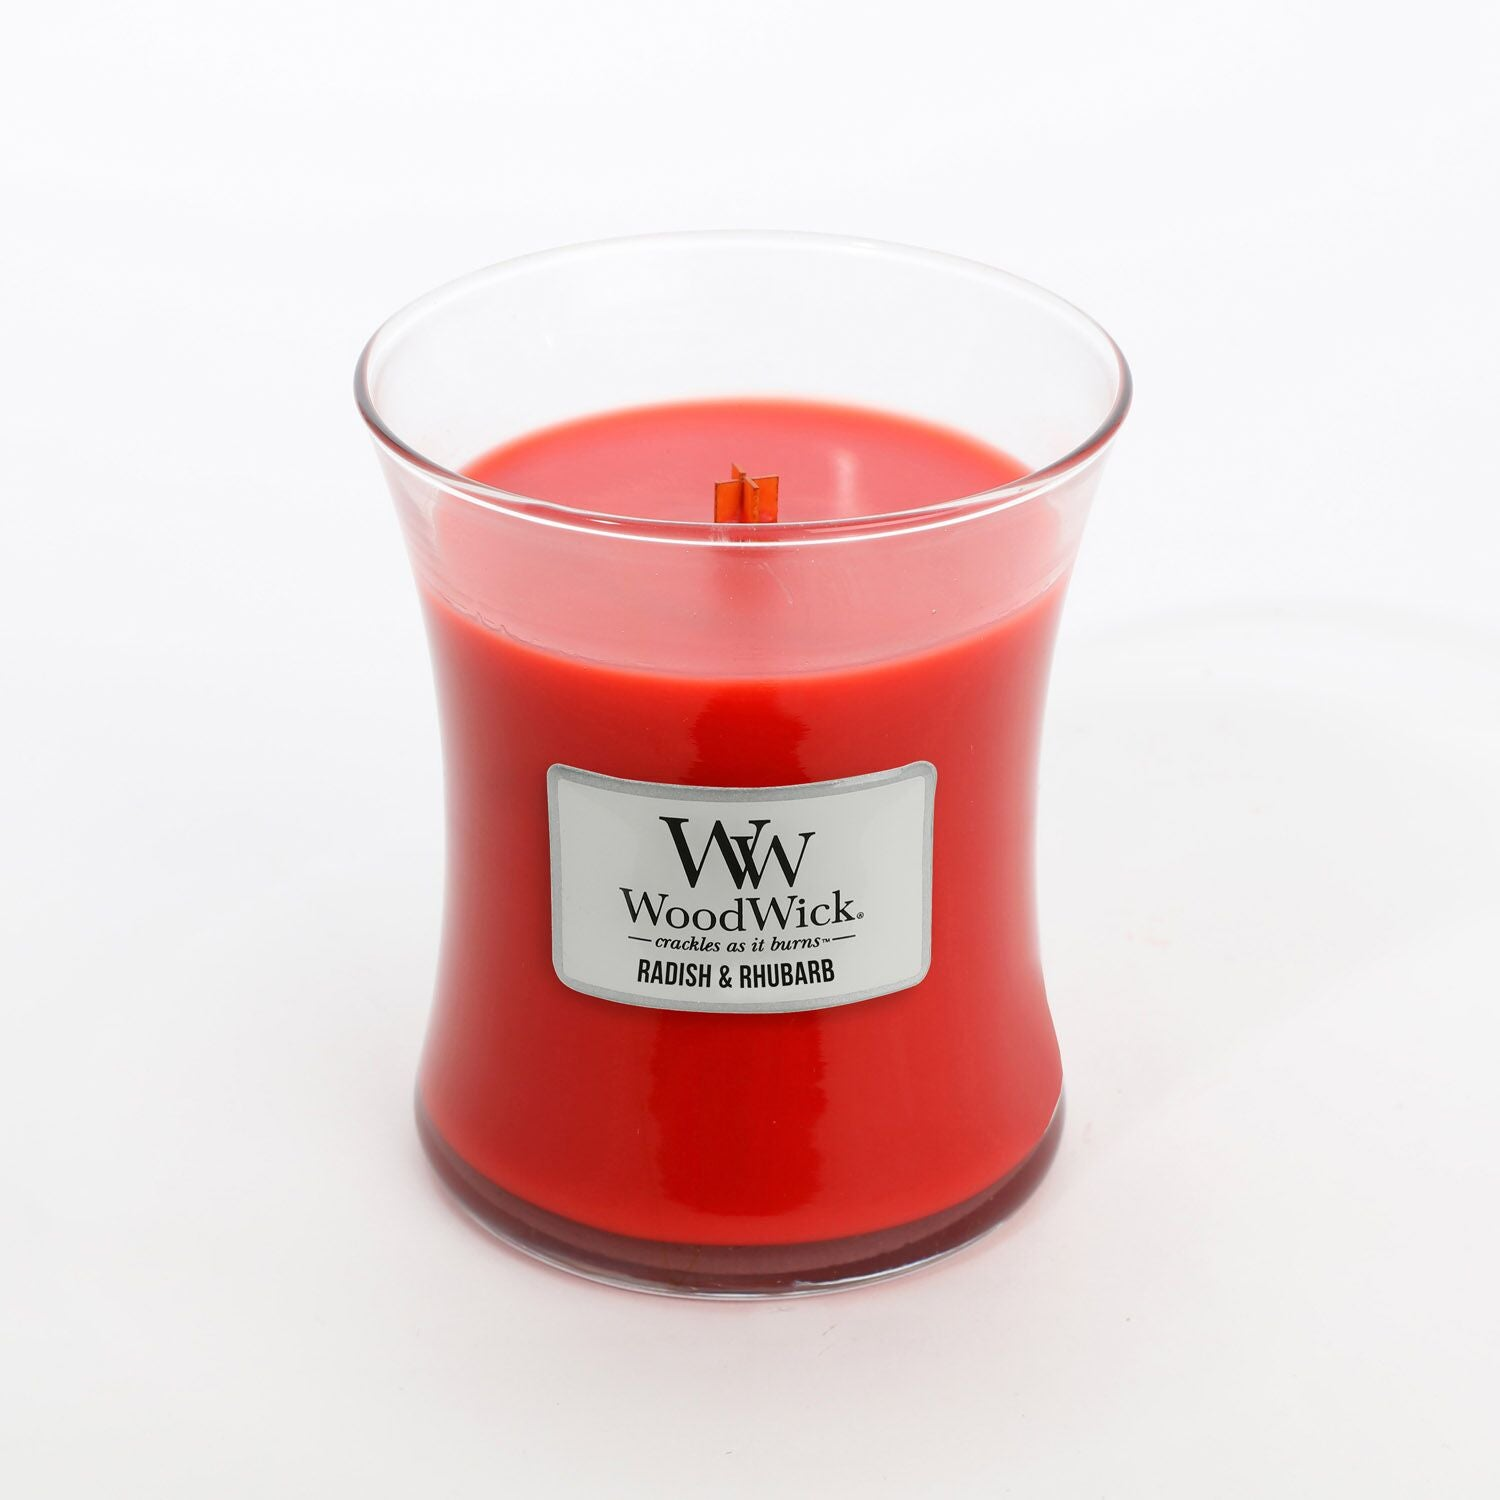 Medium Radish & Rhubarb Scented WoodWick Soy Candle